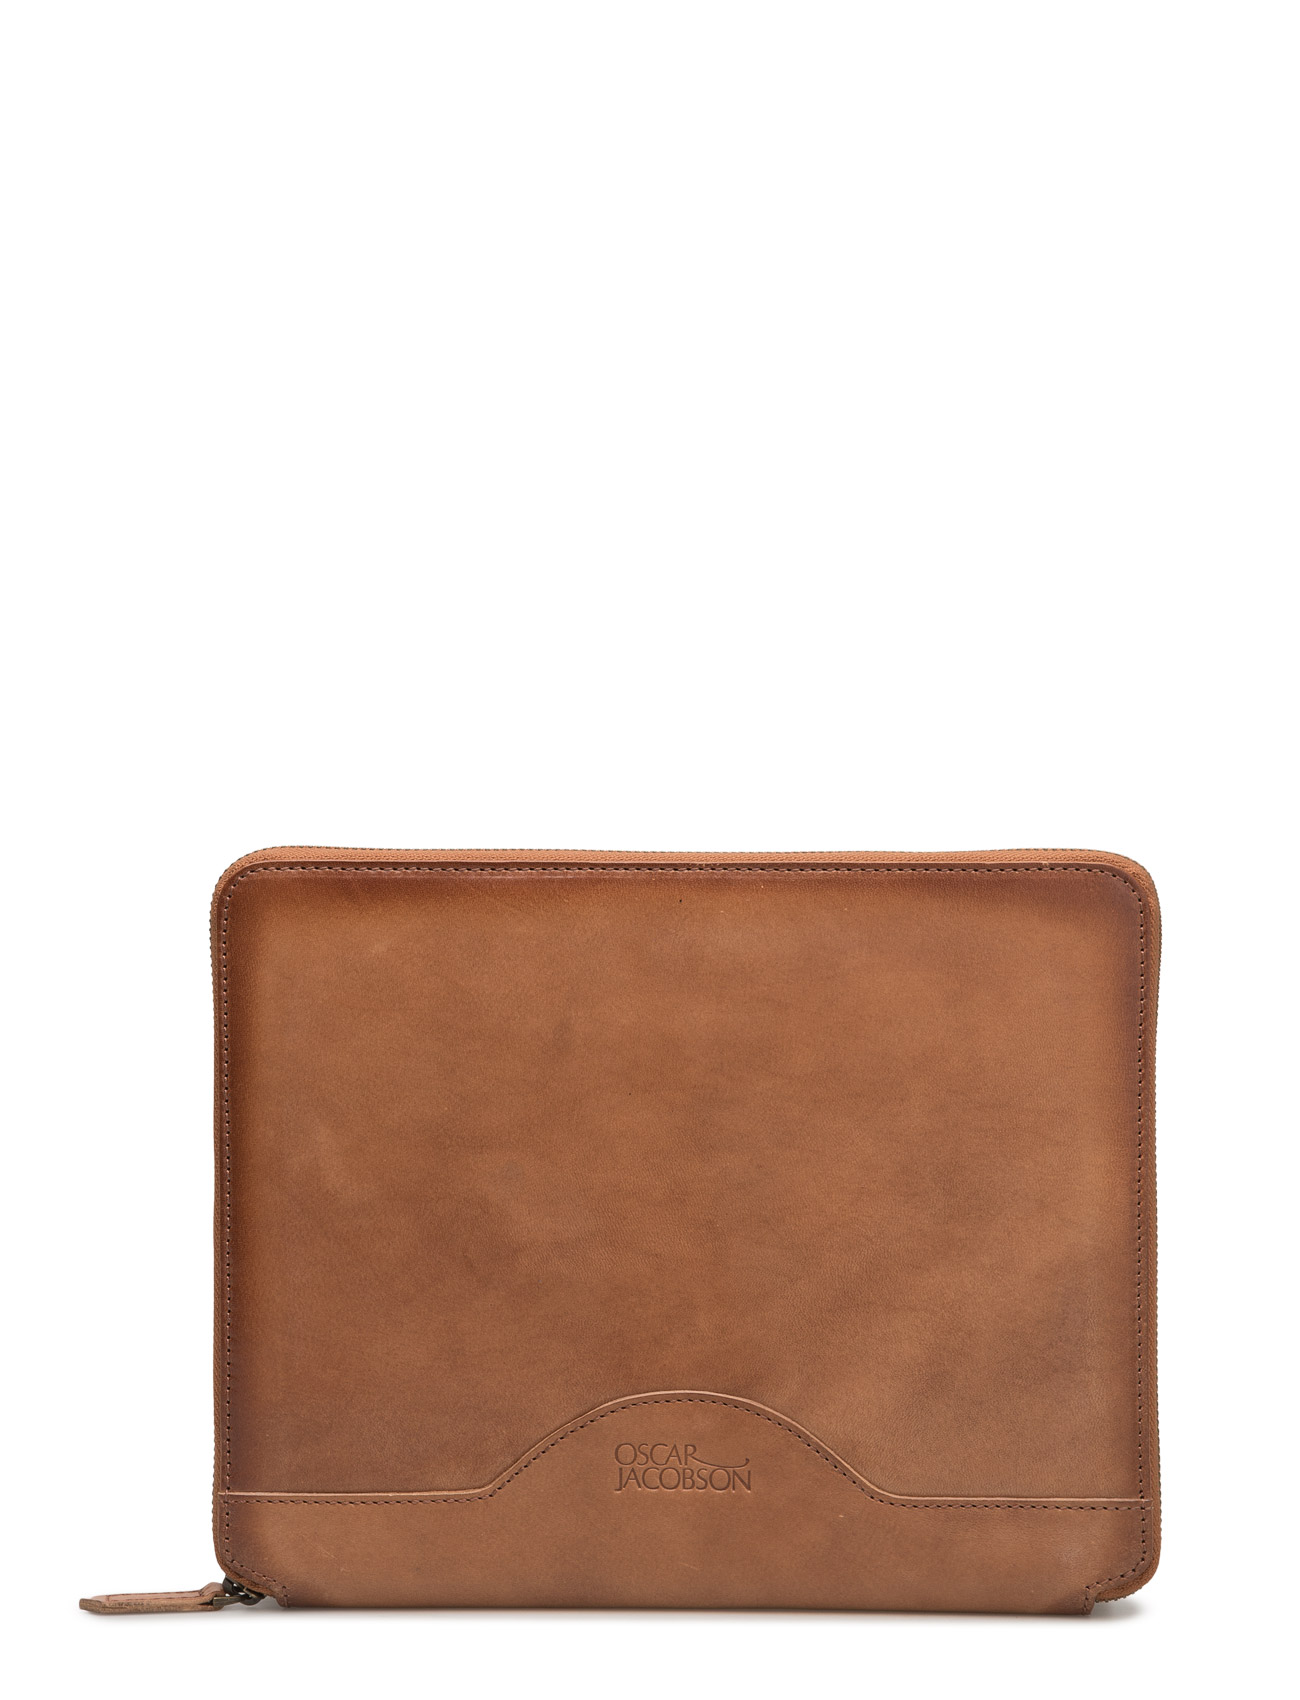 Oscar Jacobson Oj E-Tablet Case Mal